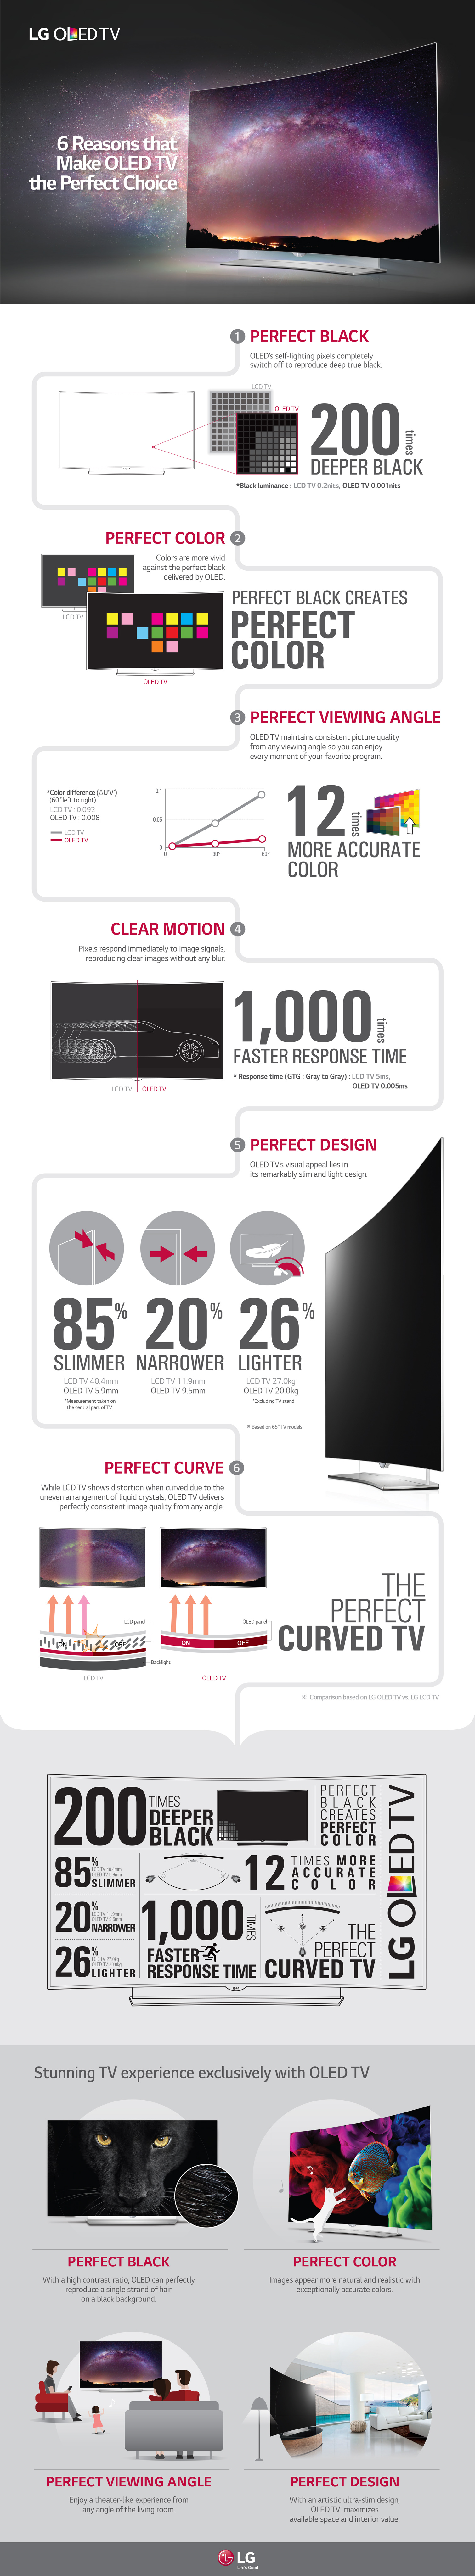 LG OLED TV Infographic